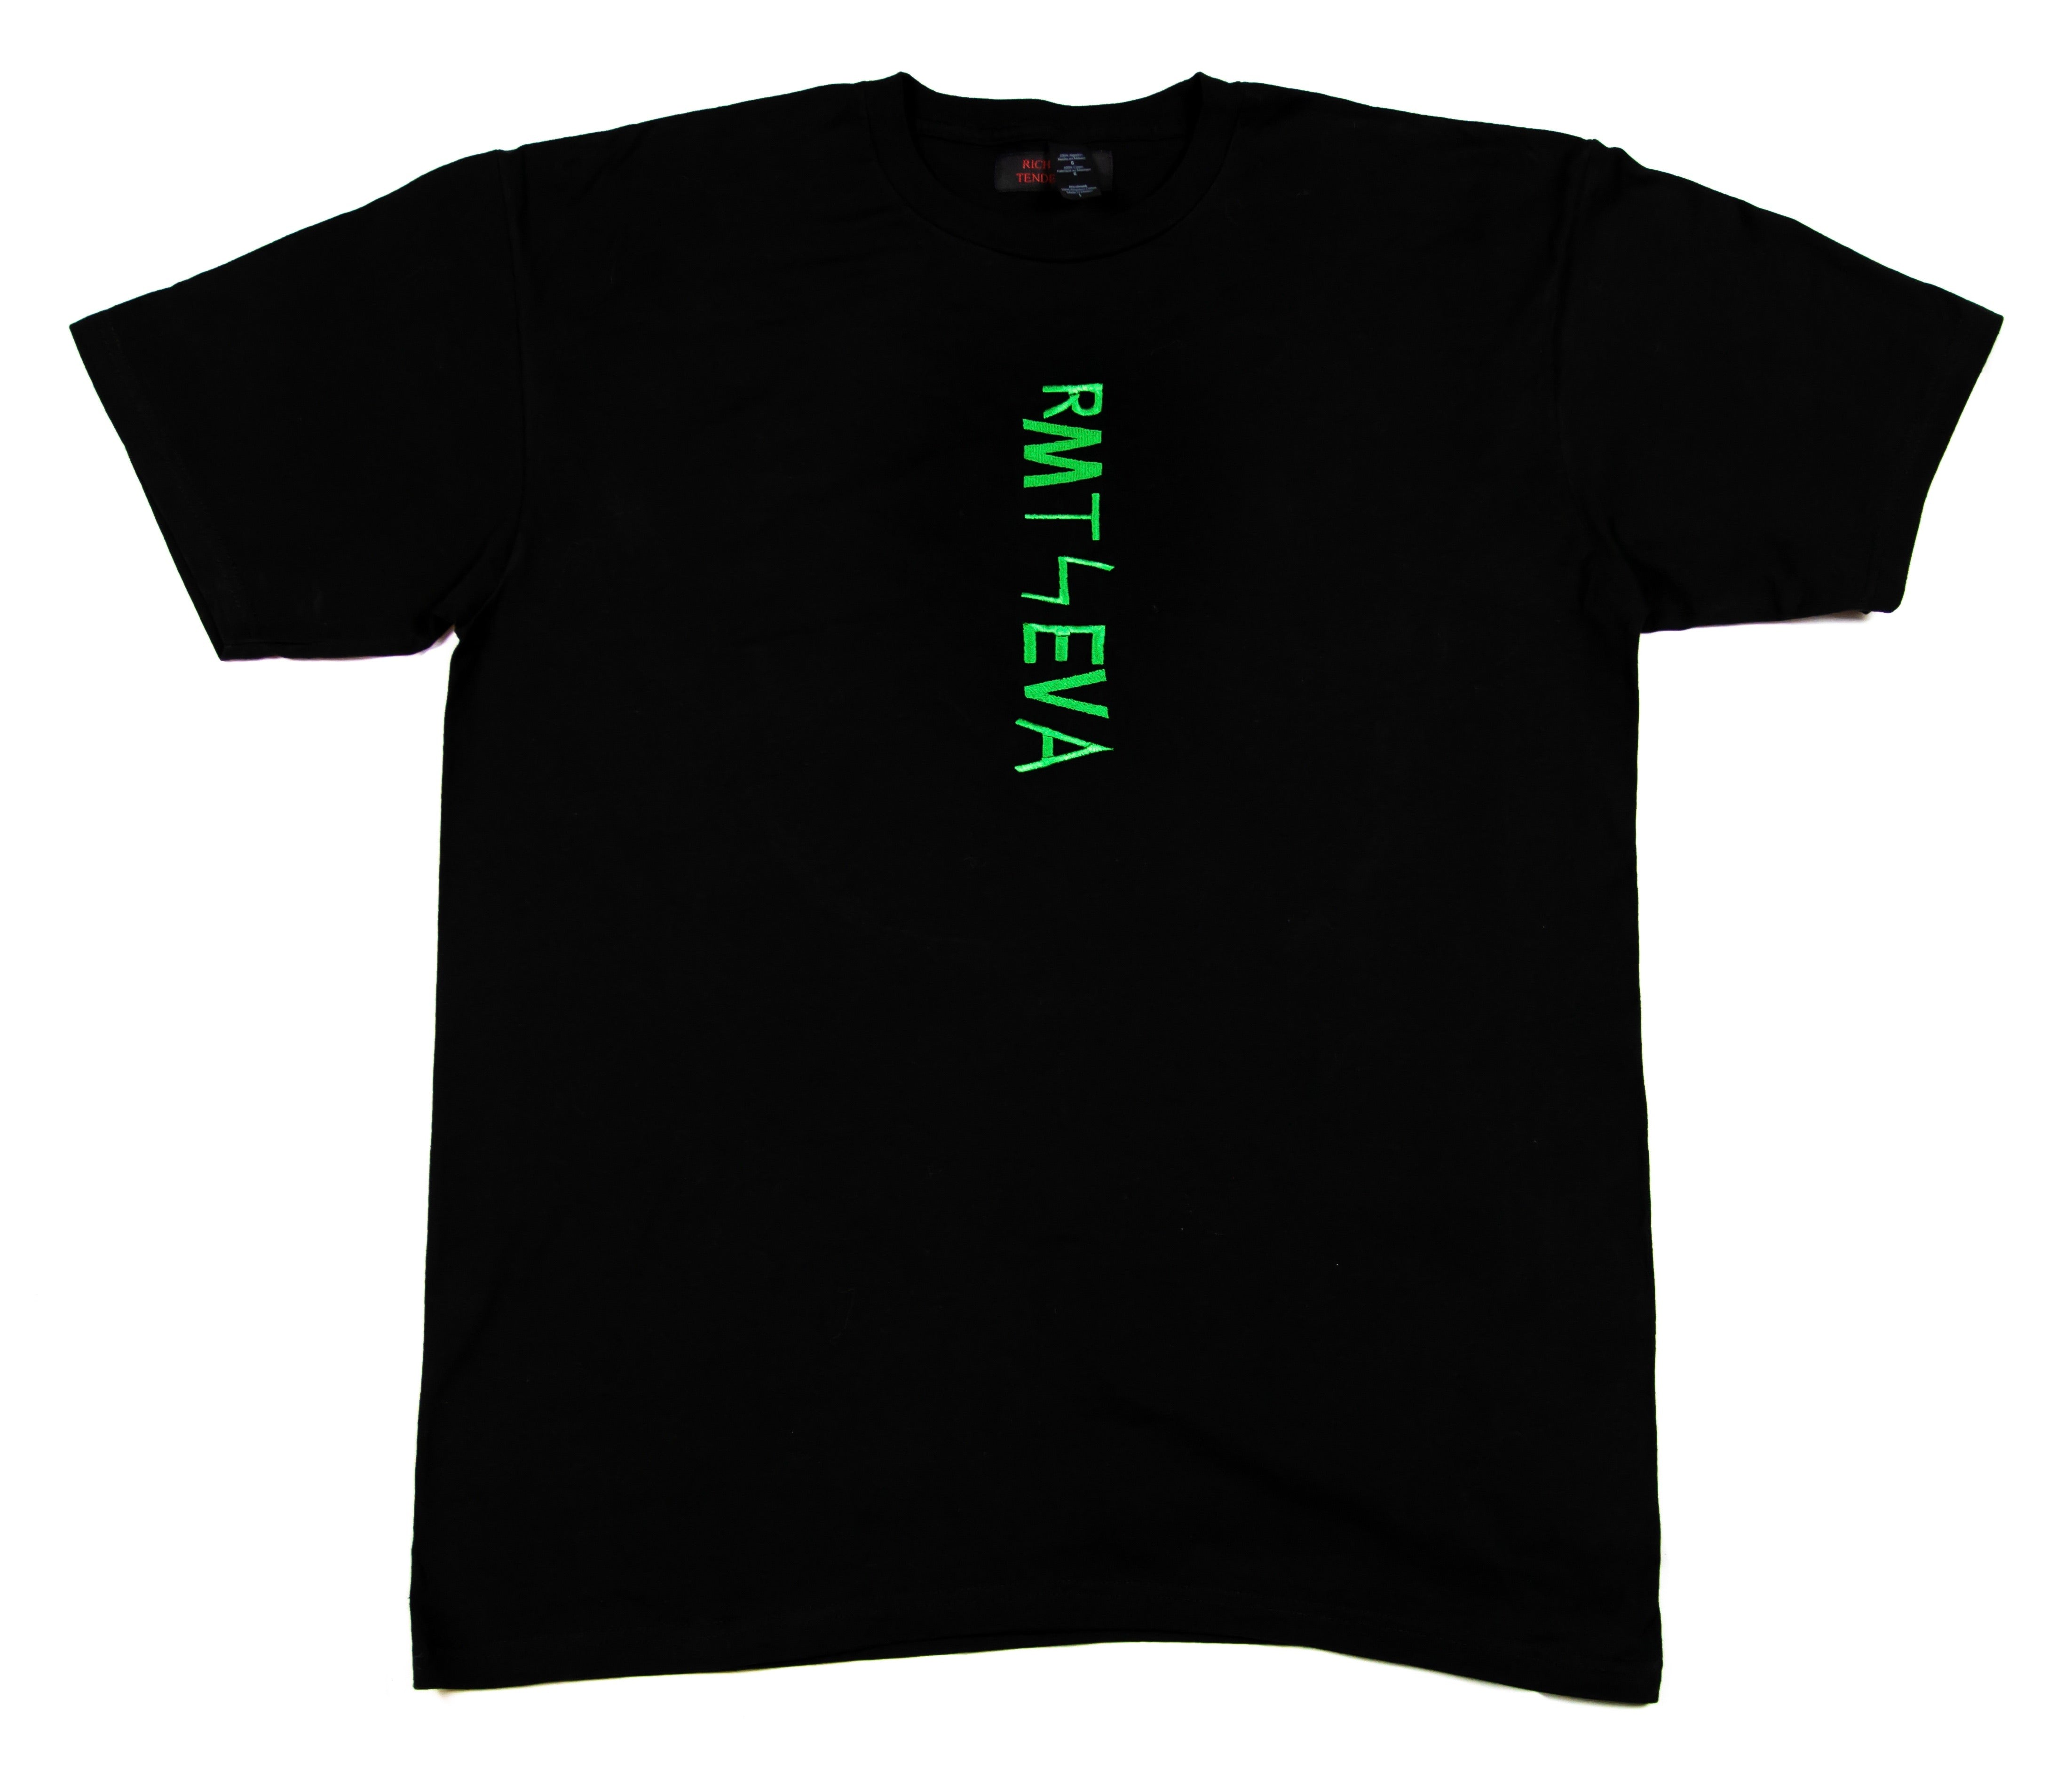 RMT4EVA design T-Shirt - Black/Green